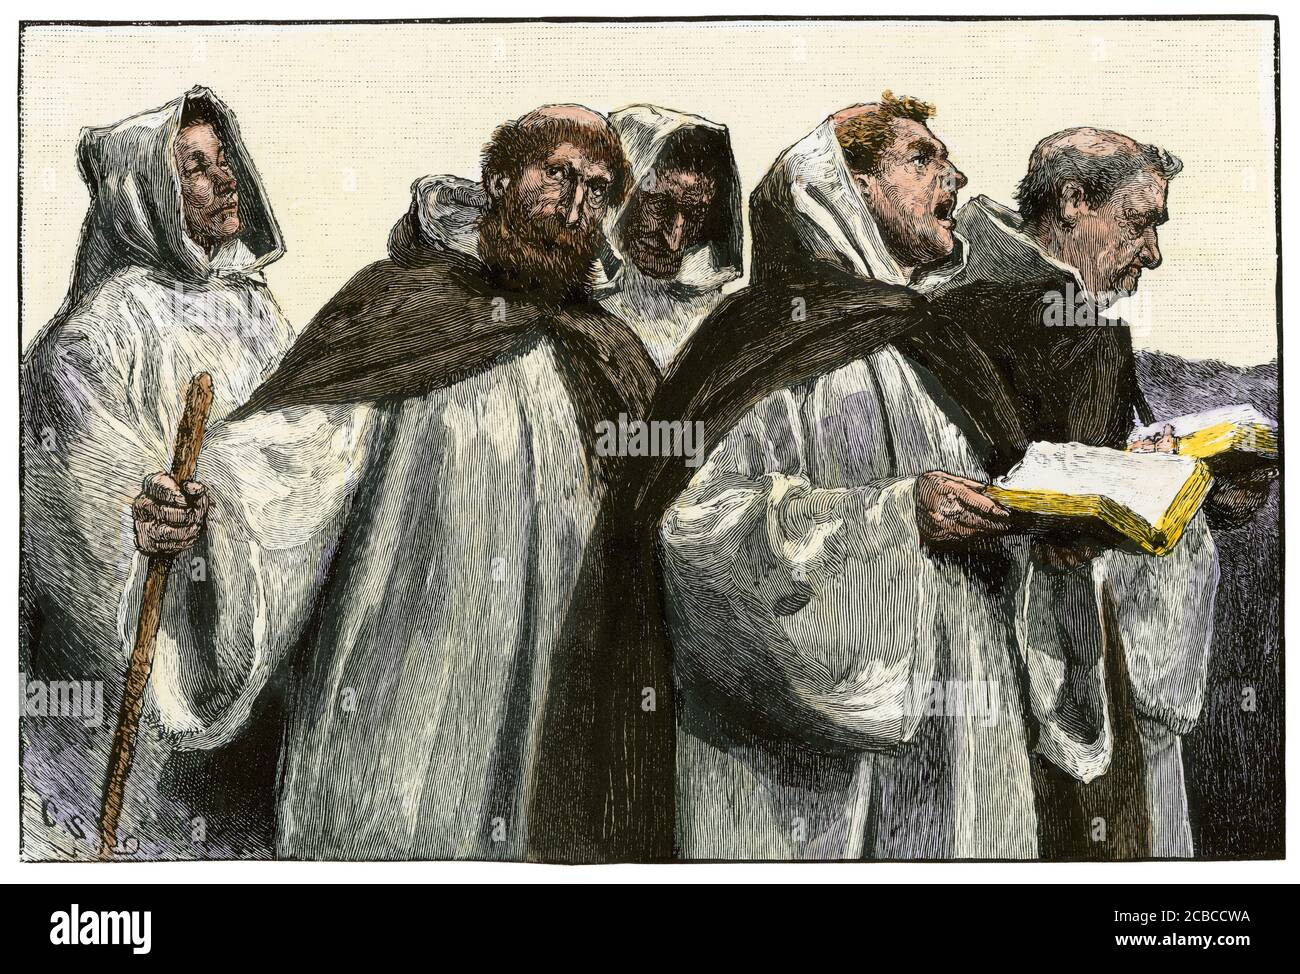 Procession of monks chanting. Hand-colored woodcut Stock Photo